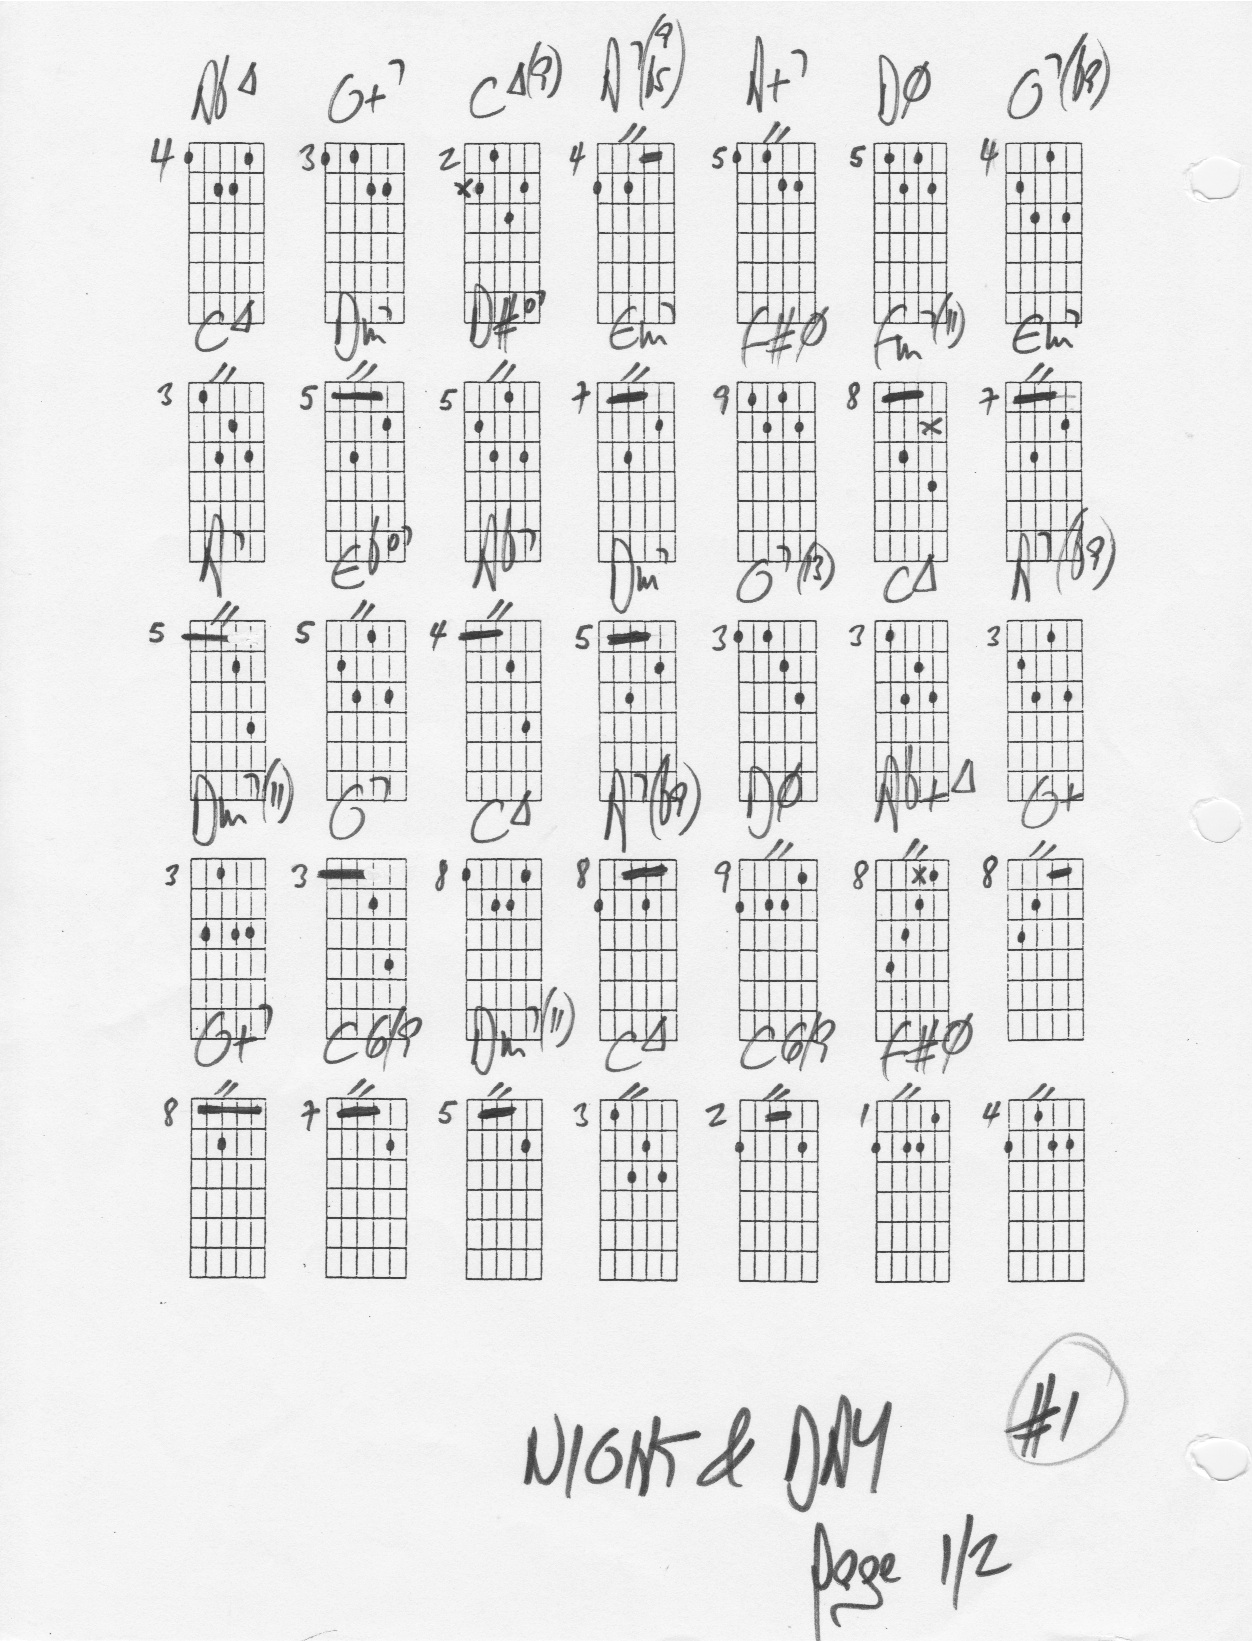 Night And Day The Chord Changes Chords Chord Changes Jazz